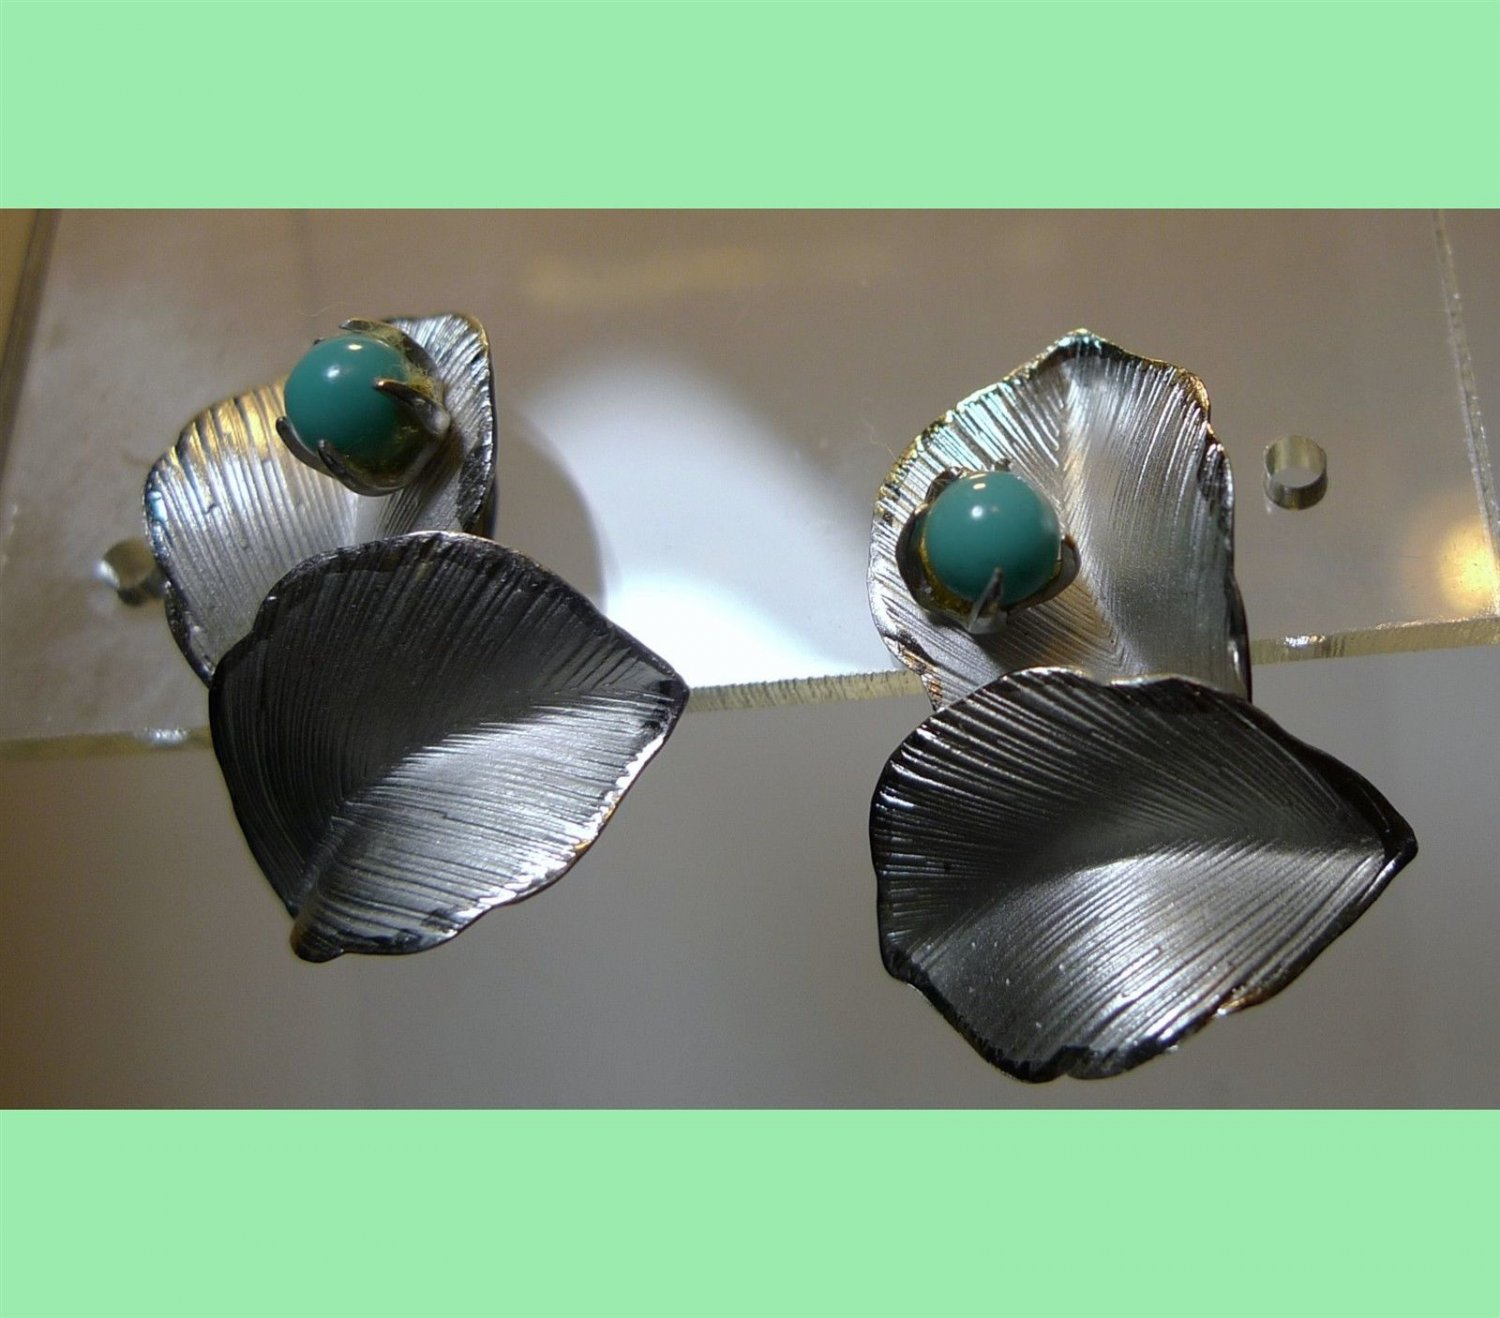 Sterling 925 Silver Leaf Clip Earrings W/ Turquoise Beads Signed PCH-LIND?